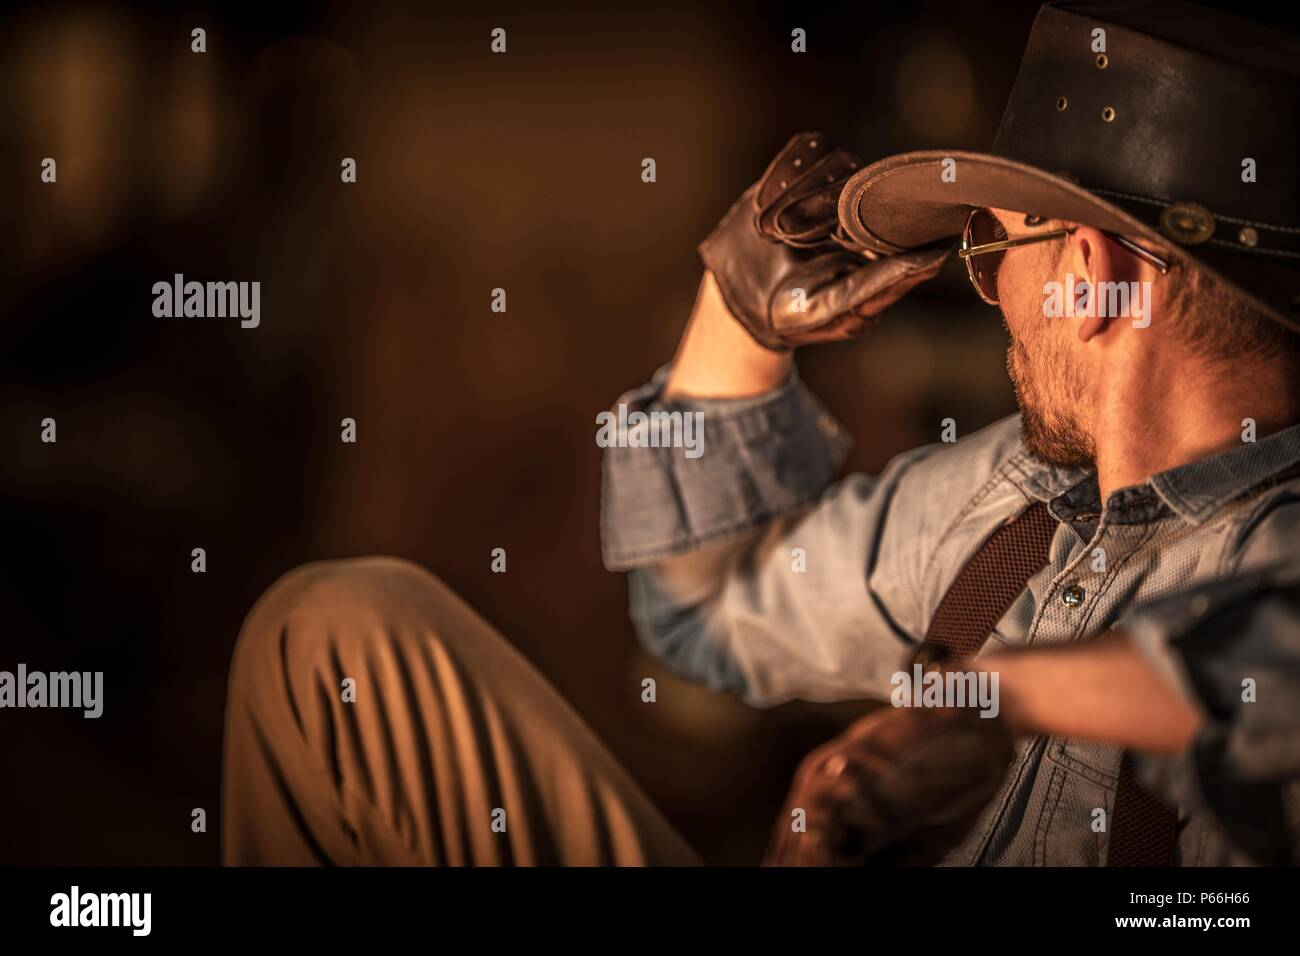 Resting American Cowboy After Hard Ranch Work. Countryside Theme. - Stock Image